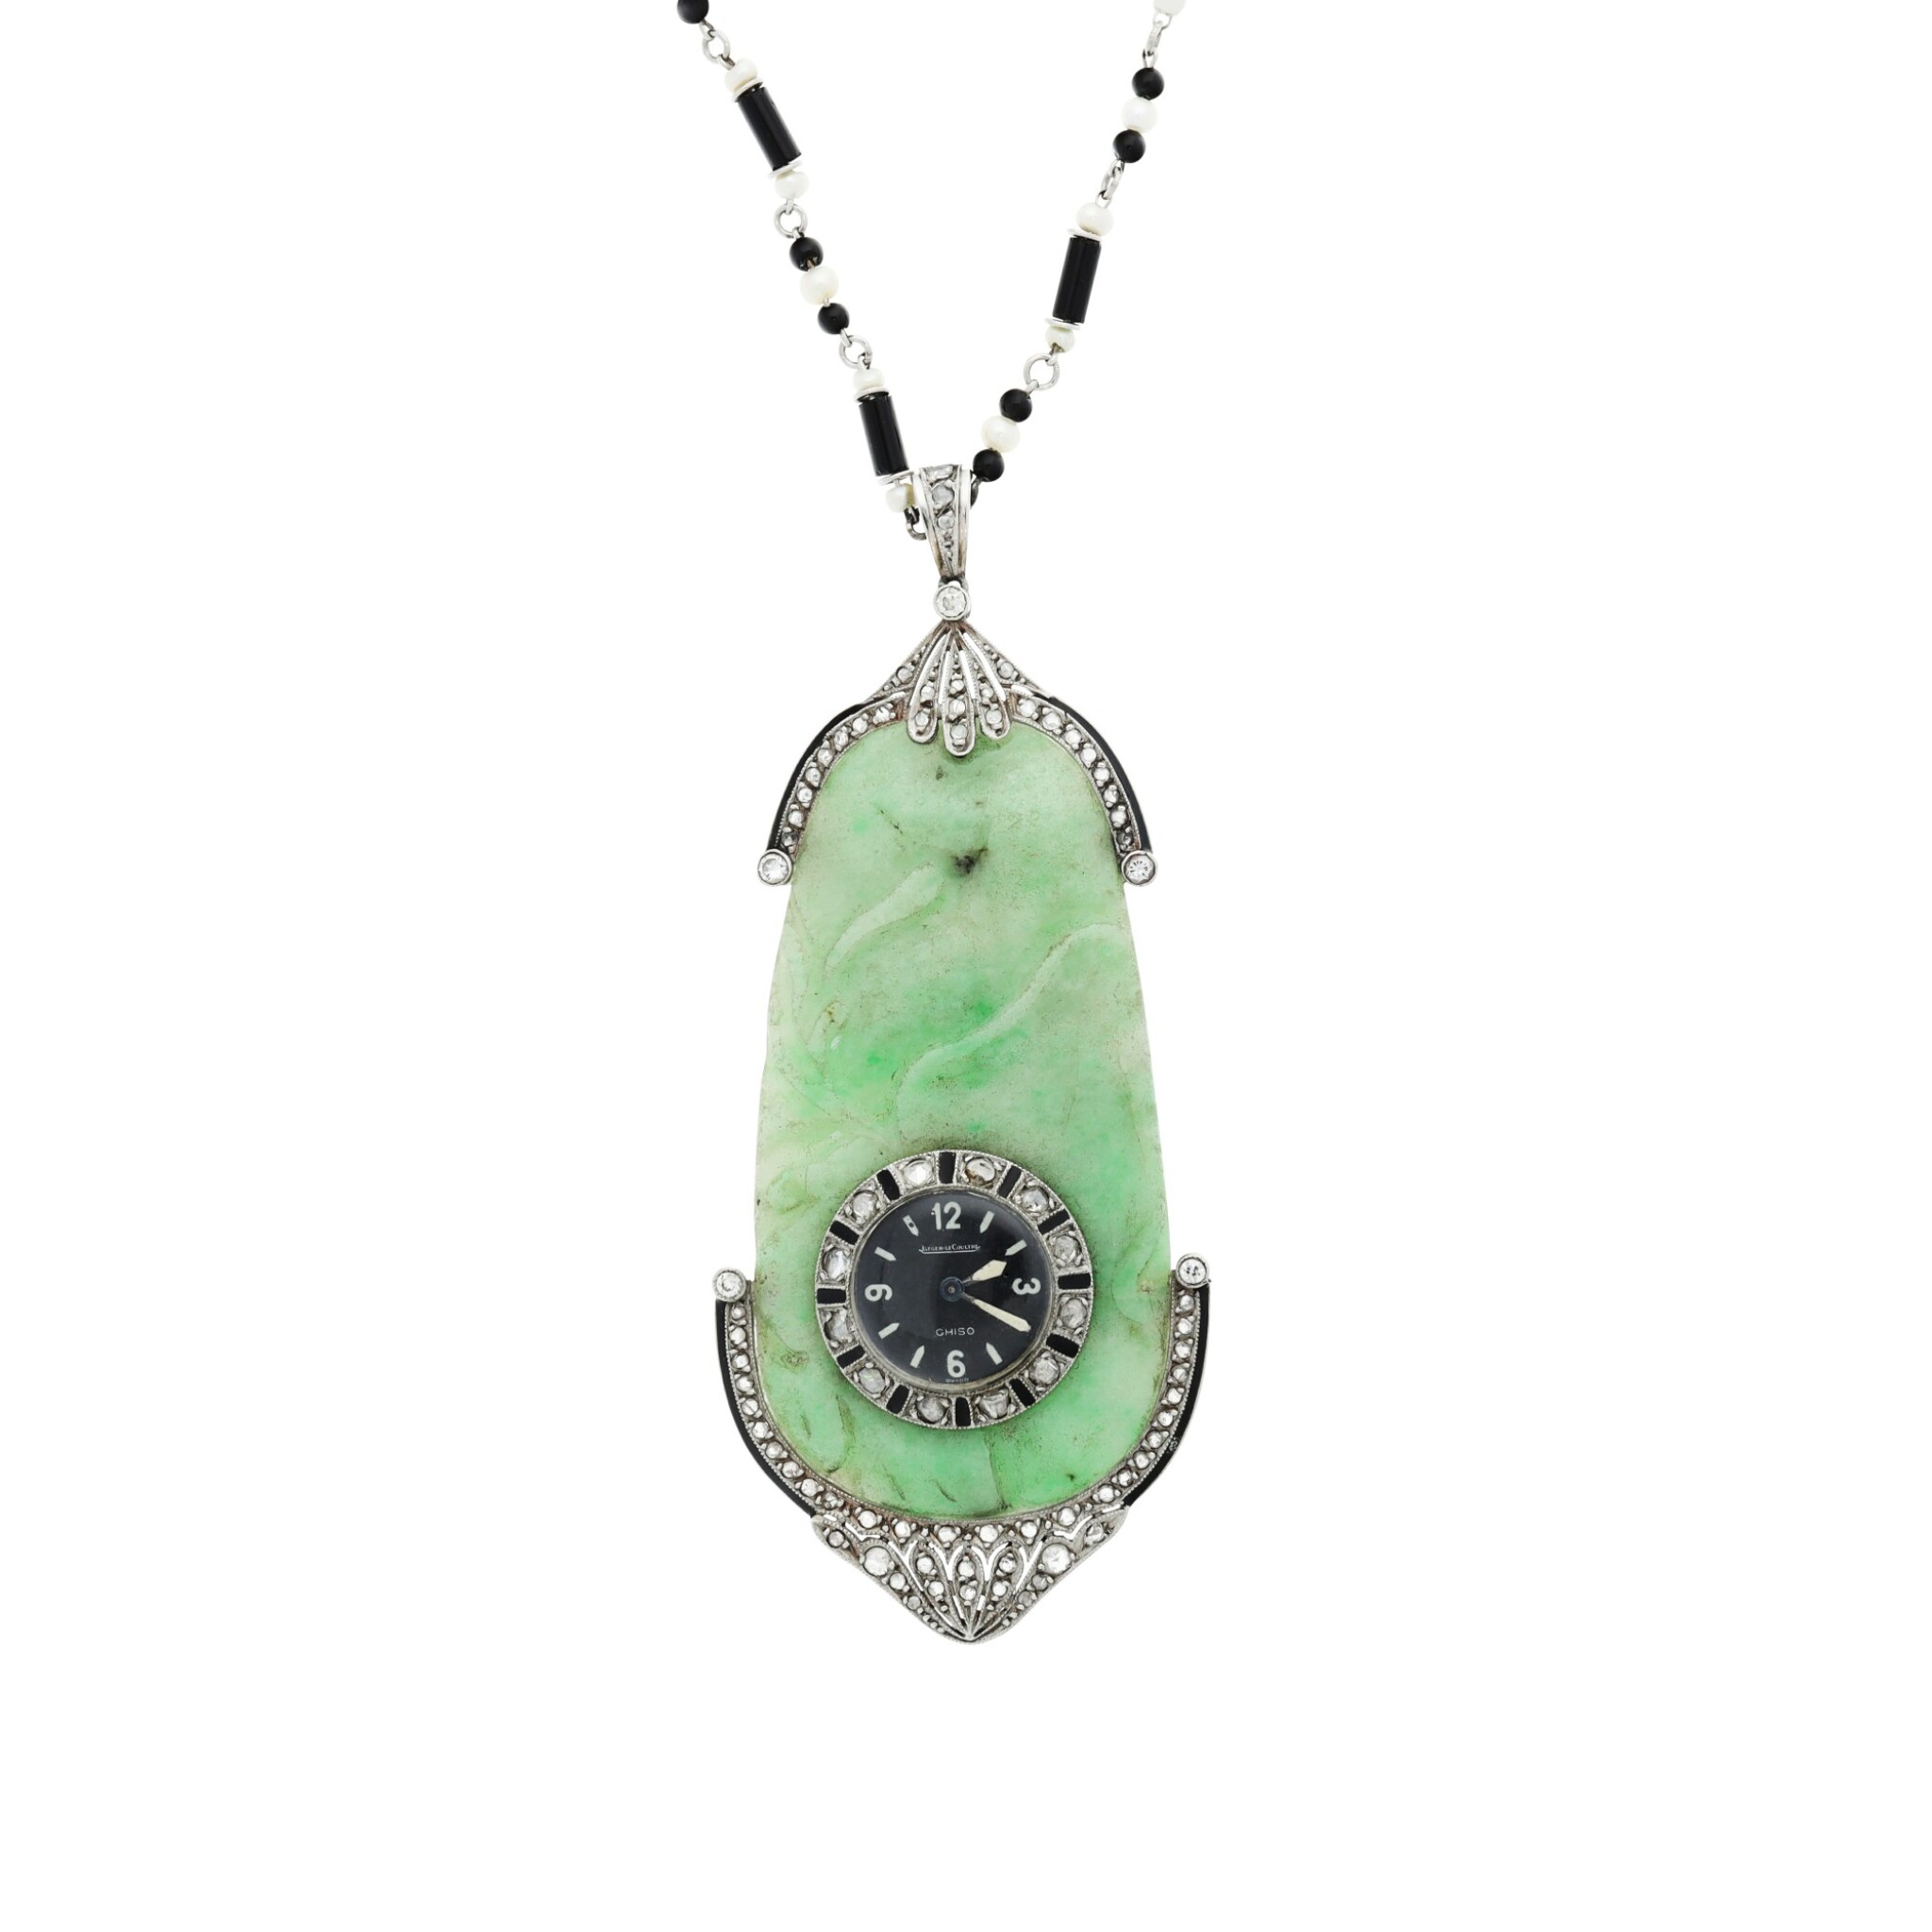 View full screen - View 1 of Lot 64. JAEGER-LECOULTRE |  RETAILED BY GHISO: A JADE, PLATINUM, DIAMOND, AND ENAMEL PENDANT WATCH, CIRCA 1925.